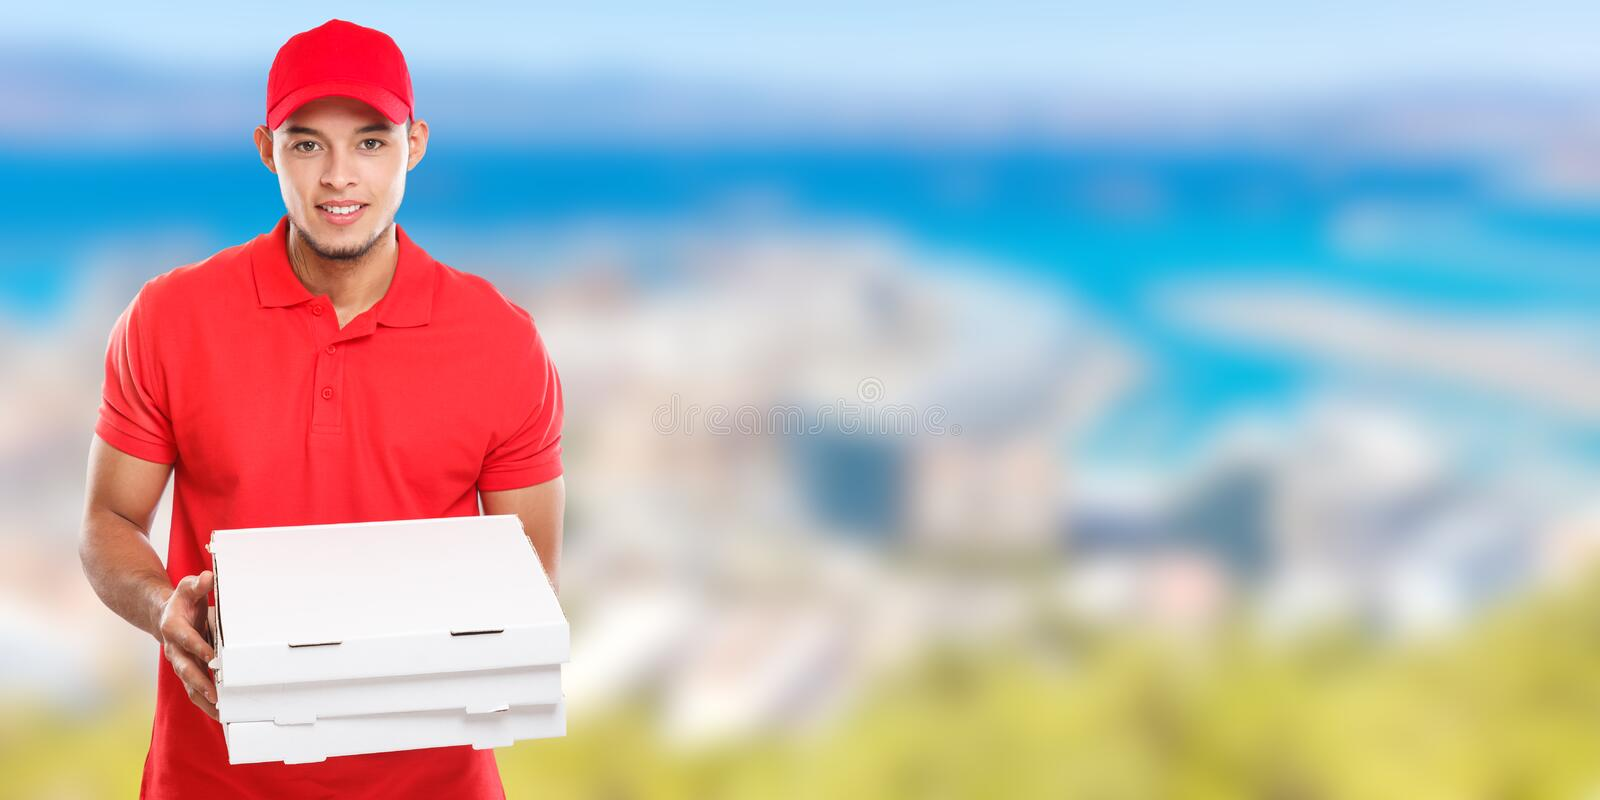 Pizza delivery latin man boy order delivering job deliver box young banner copyspace copy space. Outdoors stock image